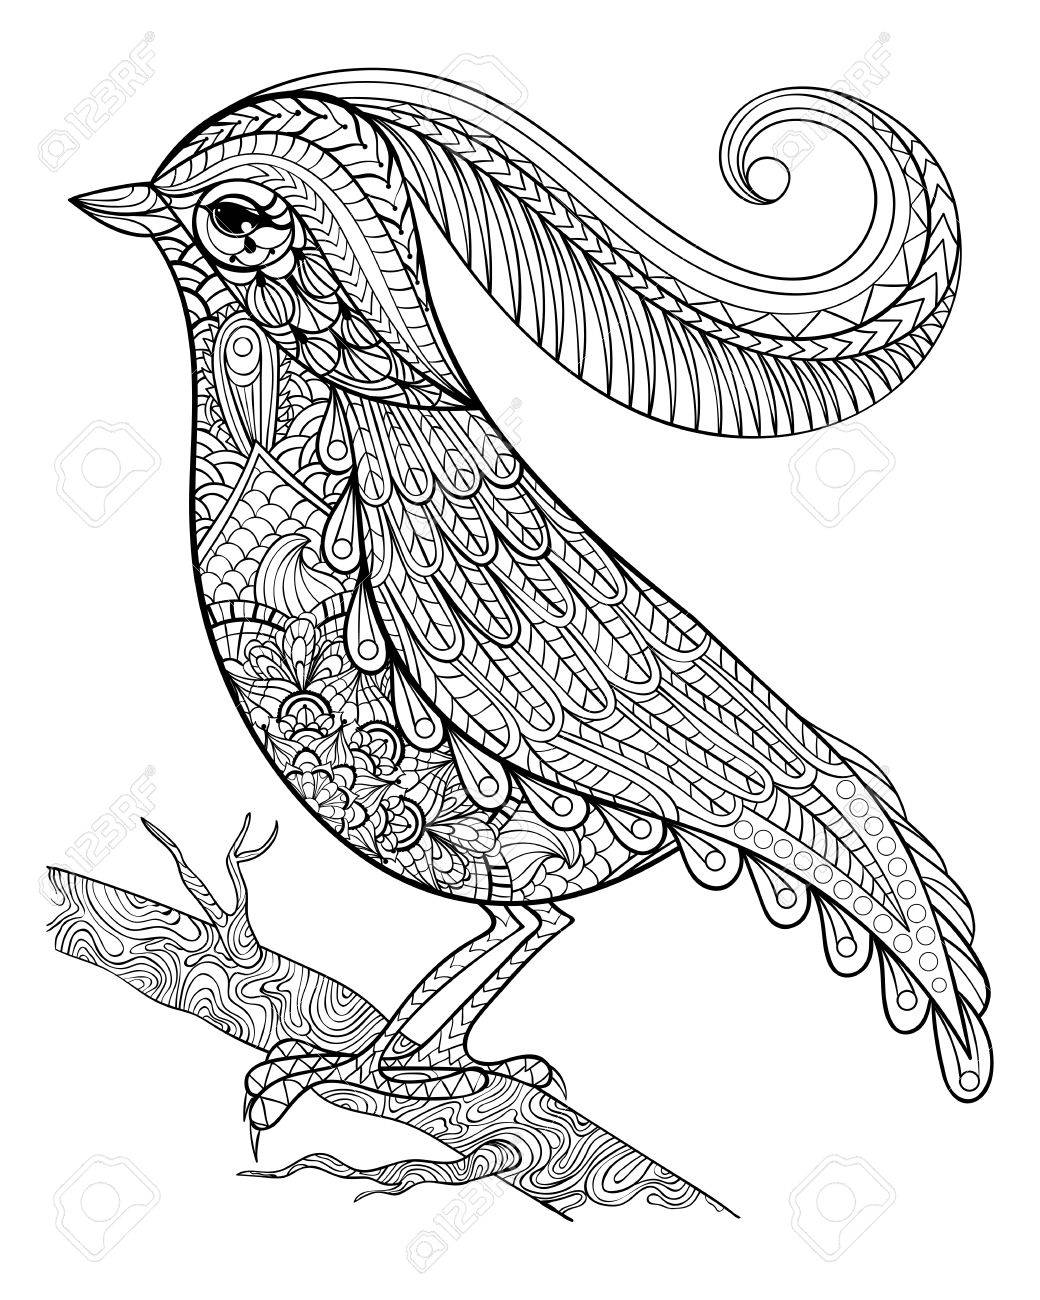 Beau Hand Drawnbeautiful Delicate Bird Sitting On A Branch Framed For Adult Anti  Stress Coloring Page With